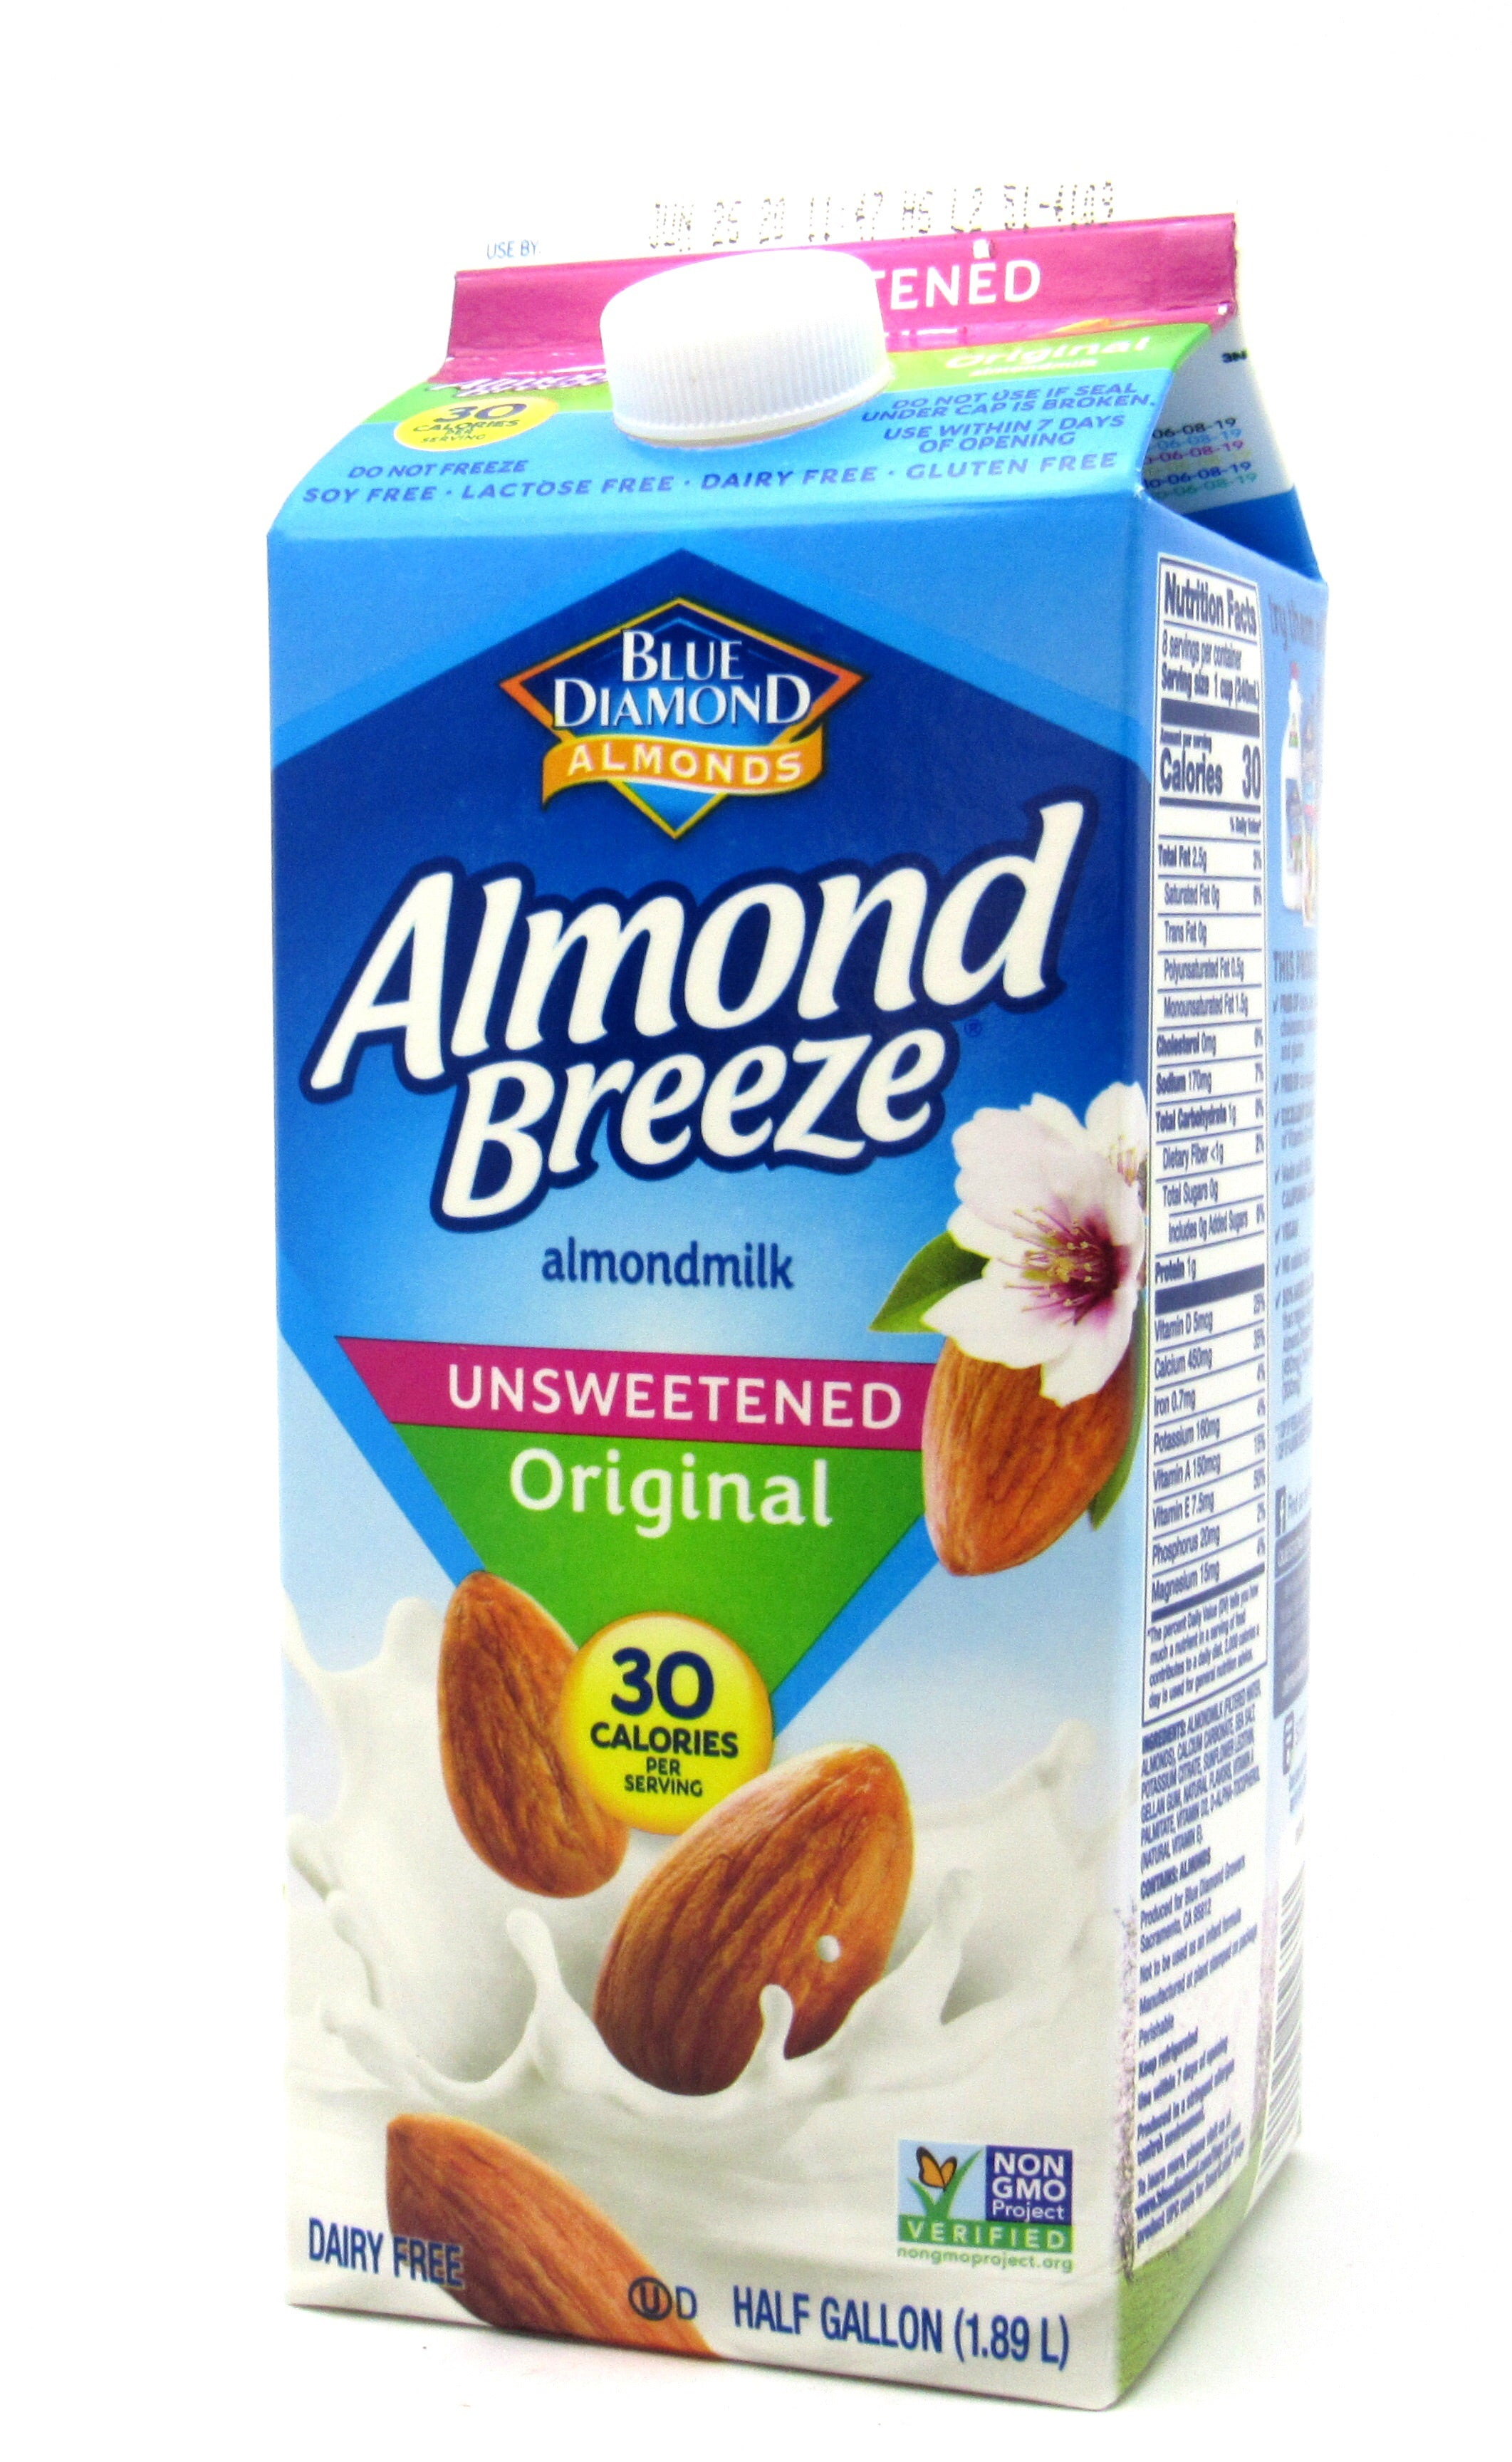 Leche Almendra 1.89L (ALMOND BREEZE) Original